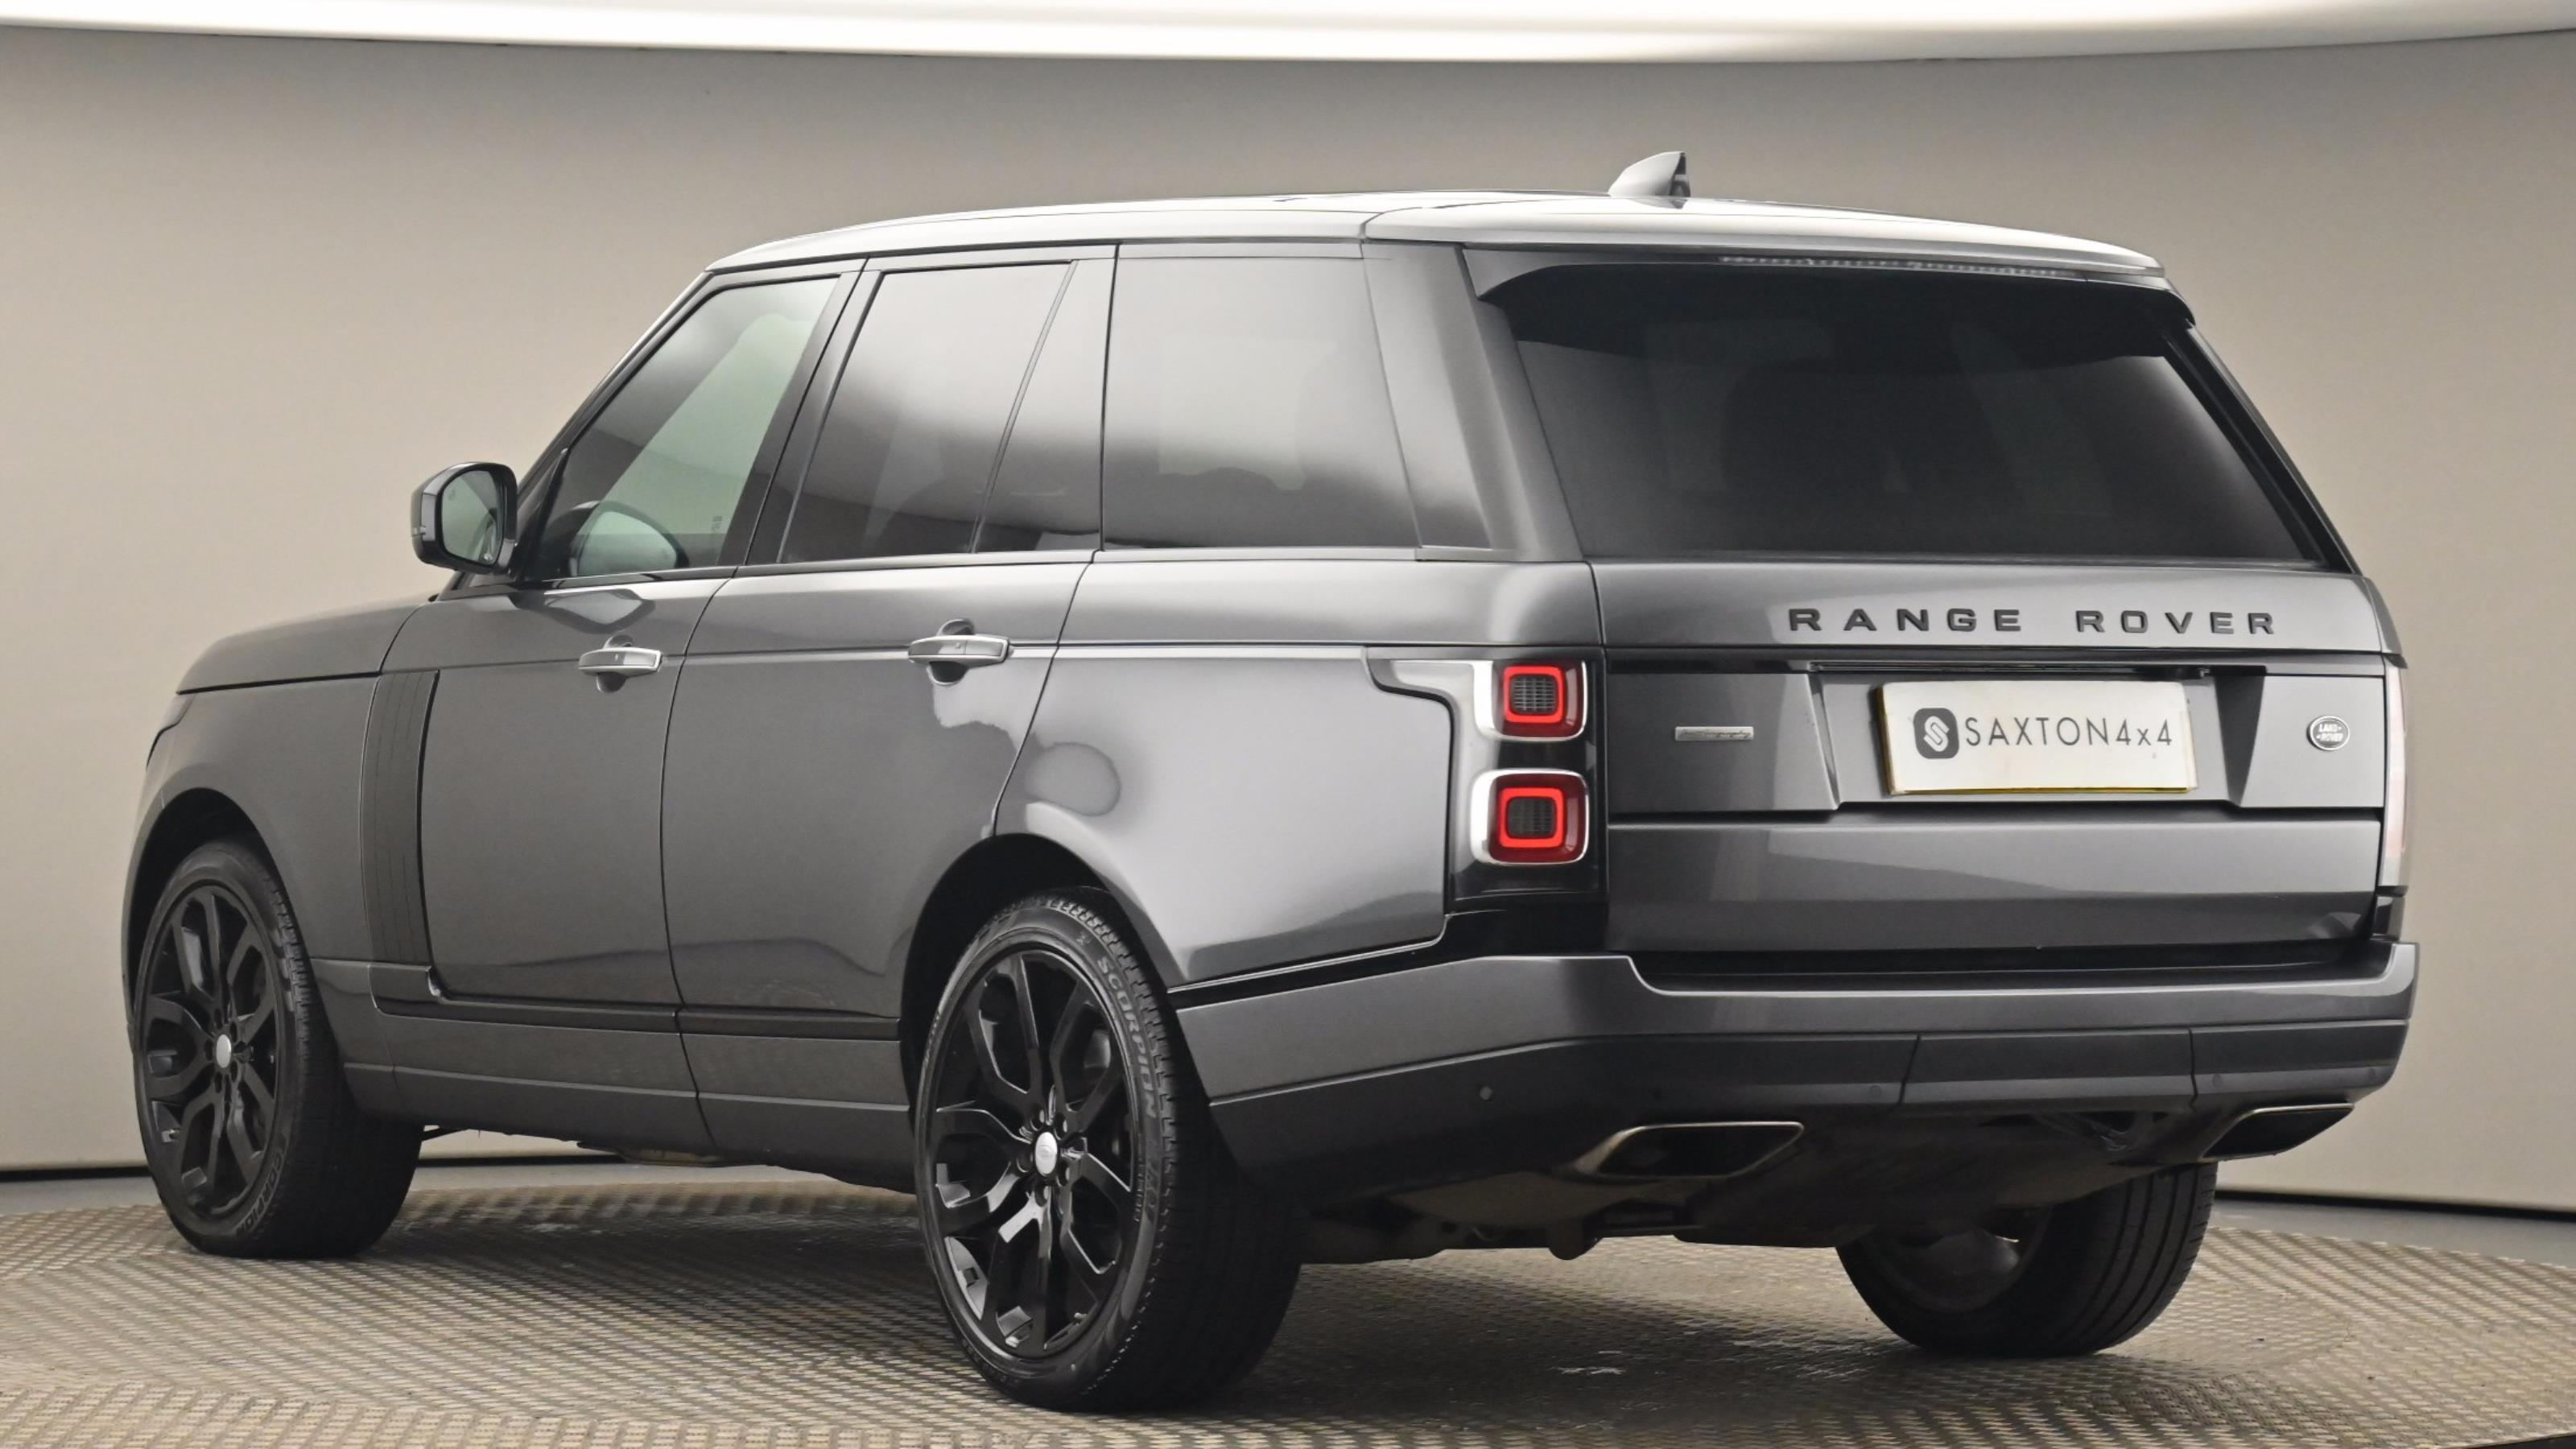 Used 2019 Land Rover RANGE ROVER 4.4 SDV8 Autobiography 4dr Auto GREY at Saxton4x4